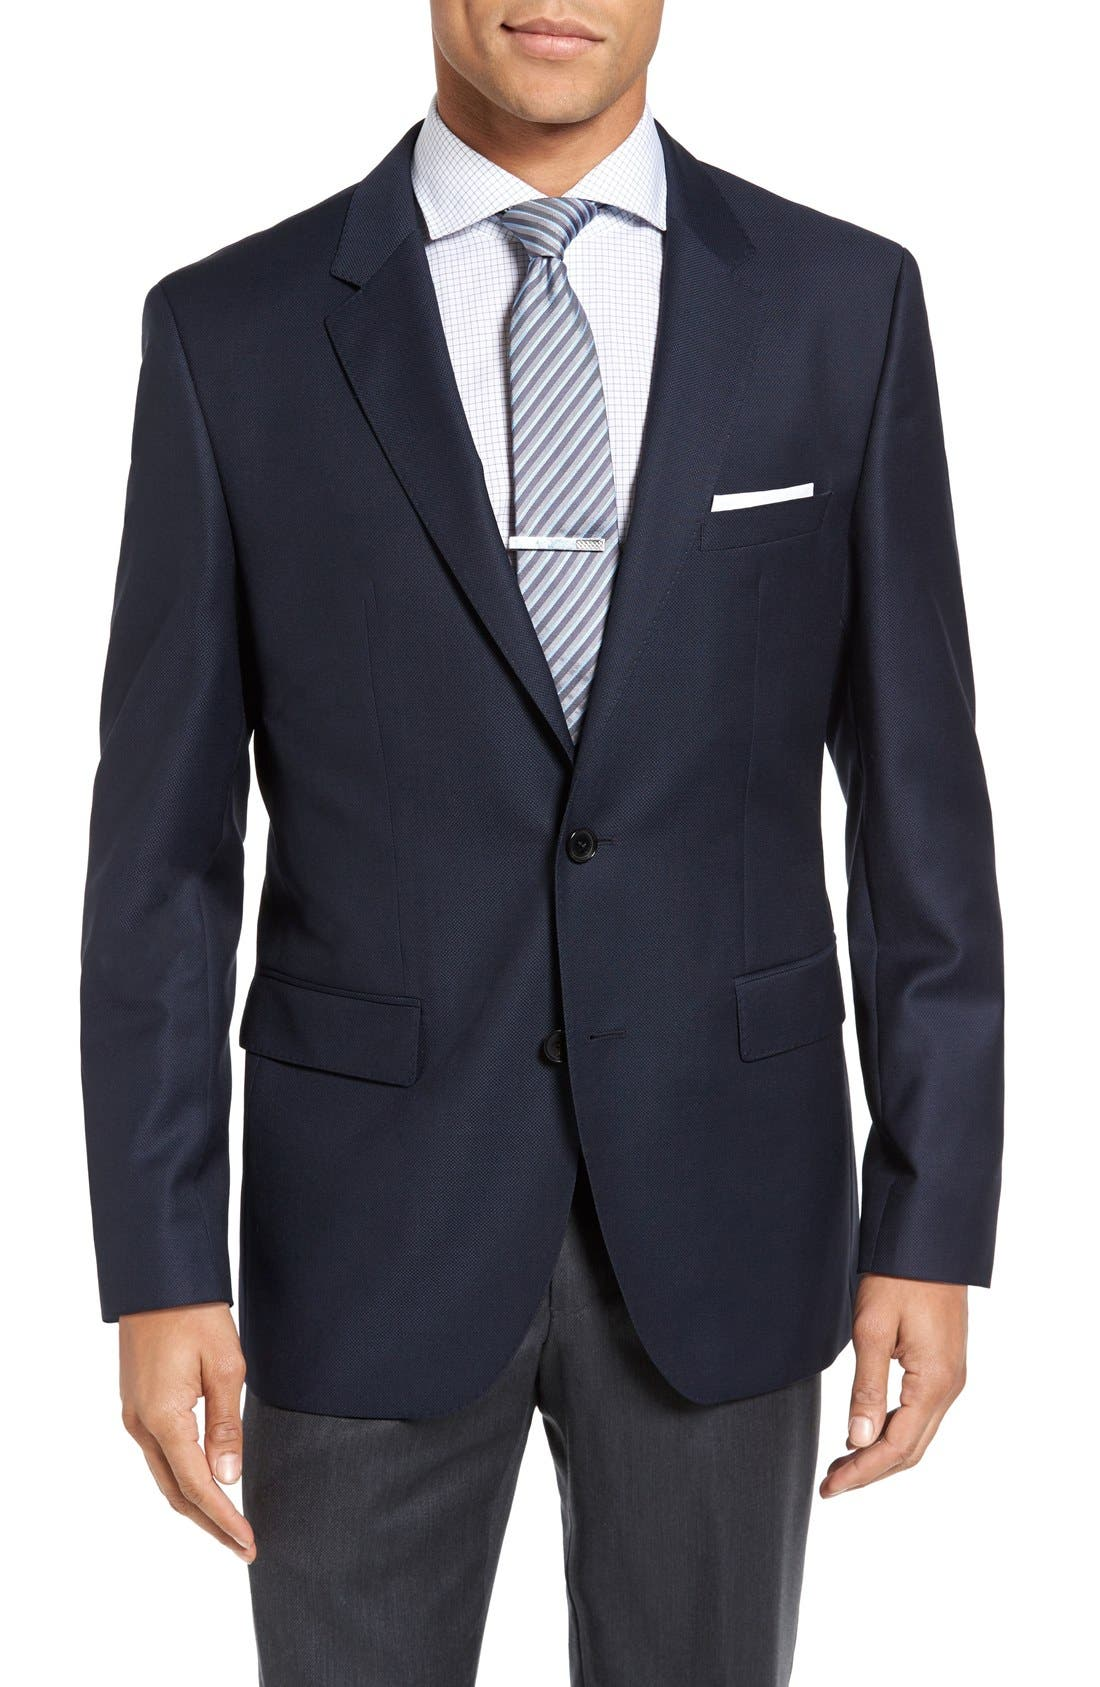 Alternate Image 1 Selected - BOSS 'James' Trim Fit Wool Blazer